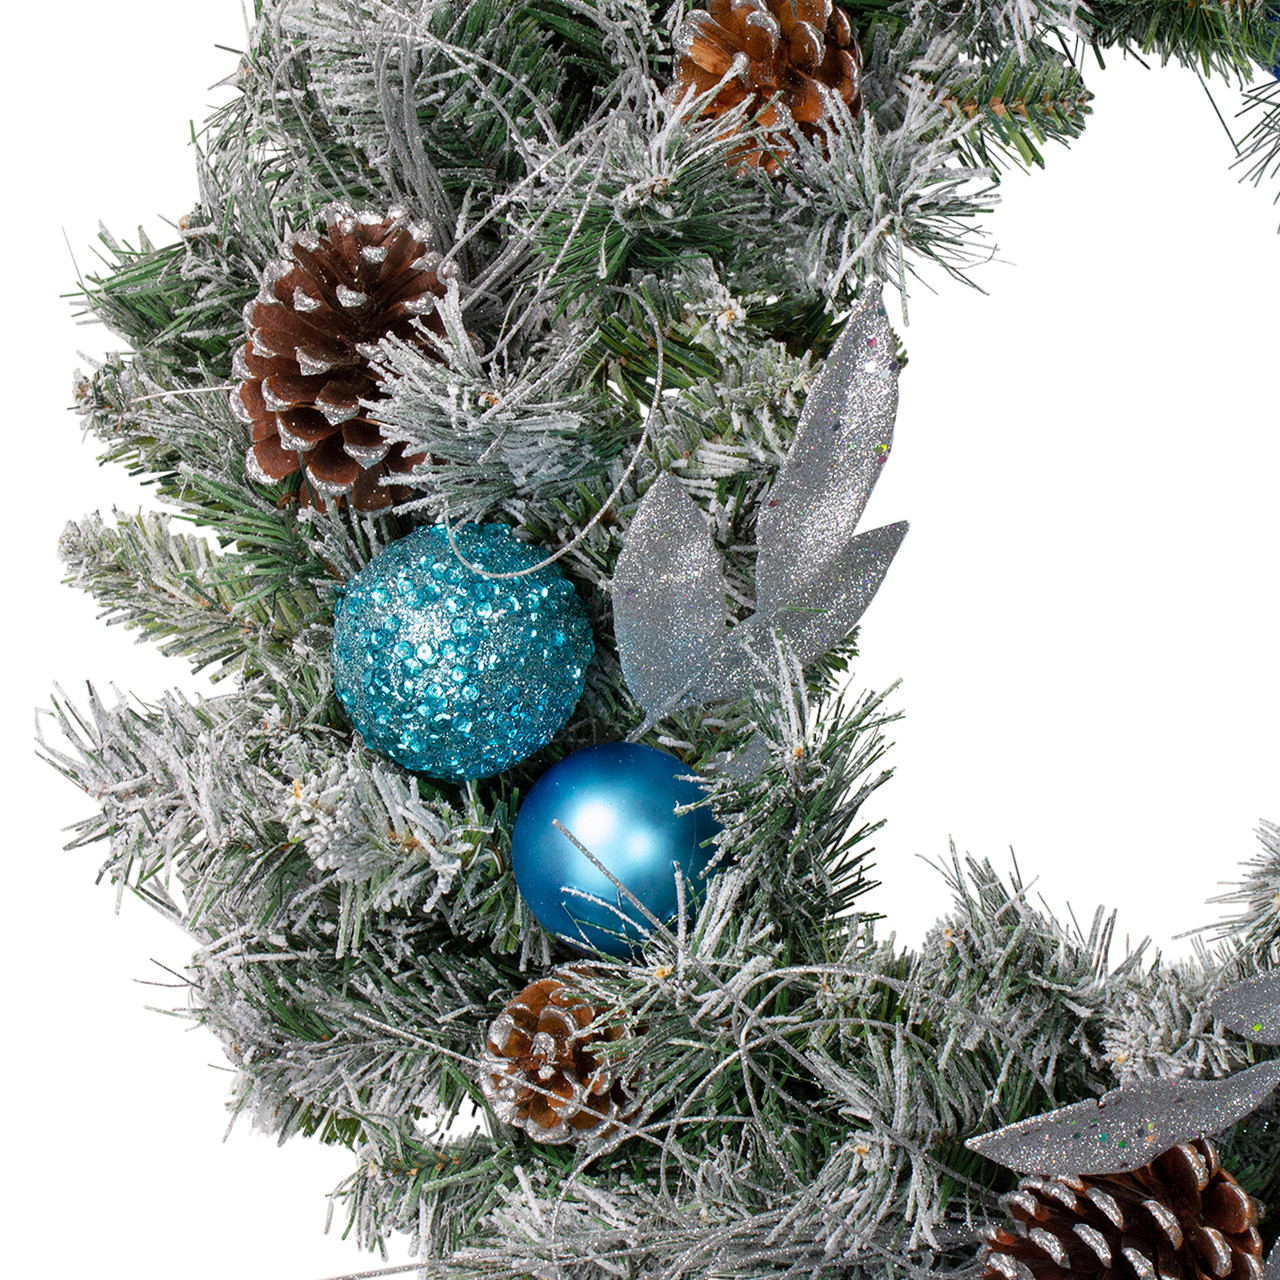 Flocked Pine with Teal and Silver Ornaments Artificial Christmas Wreath 24 Inch Unlit